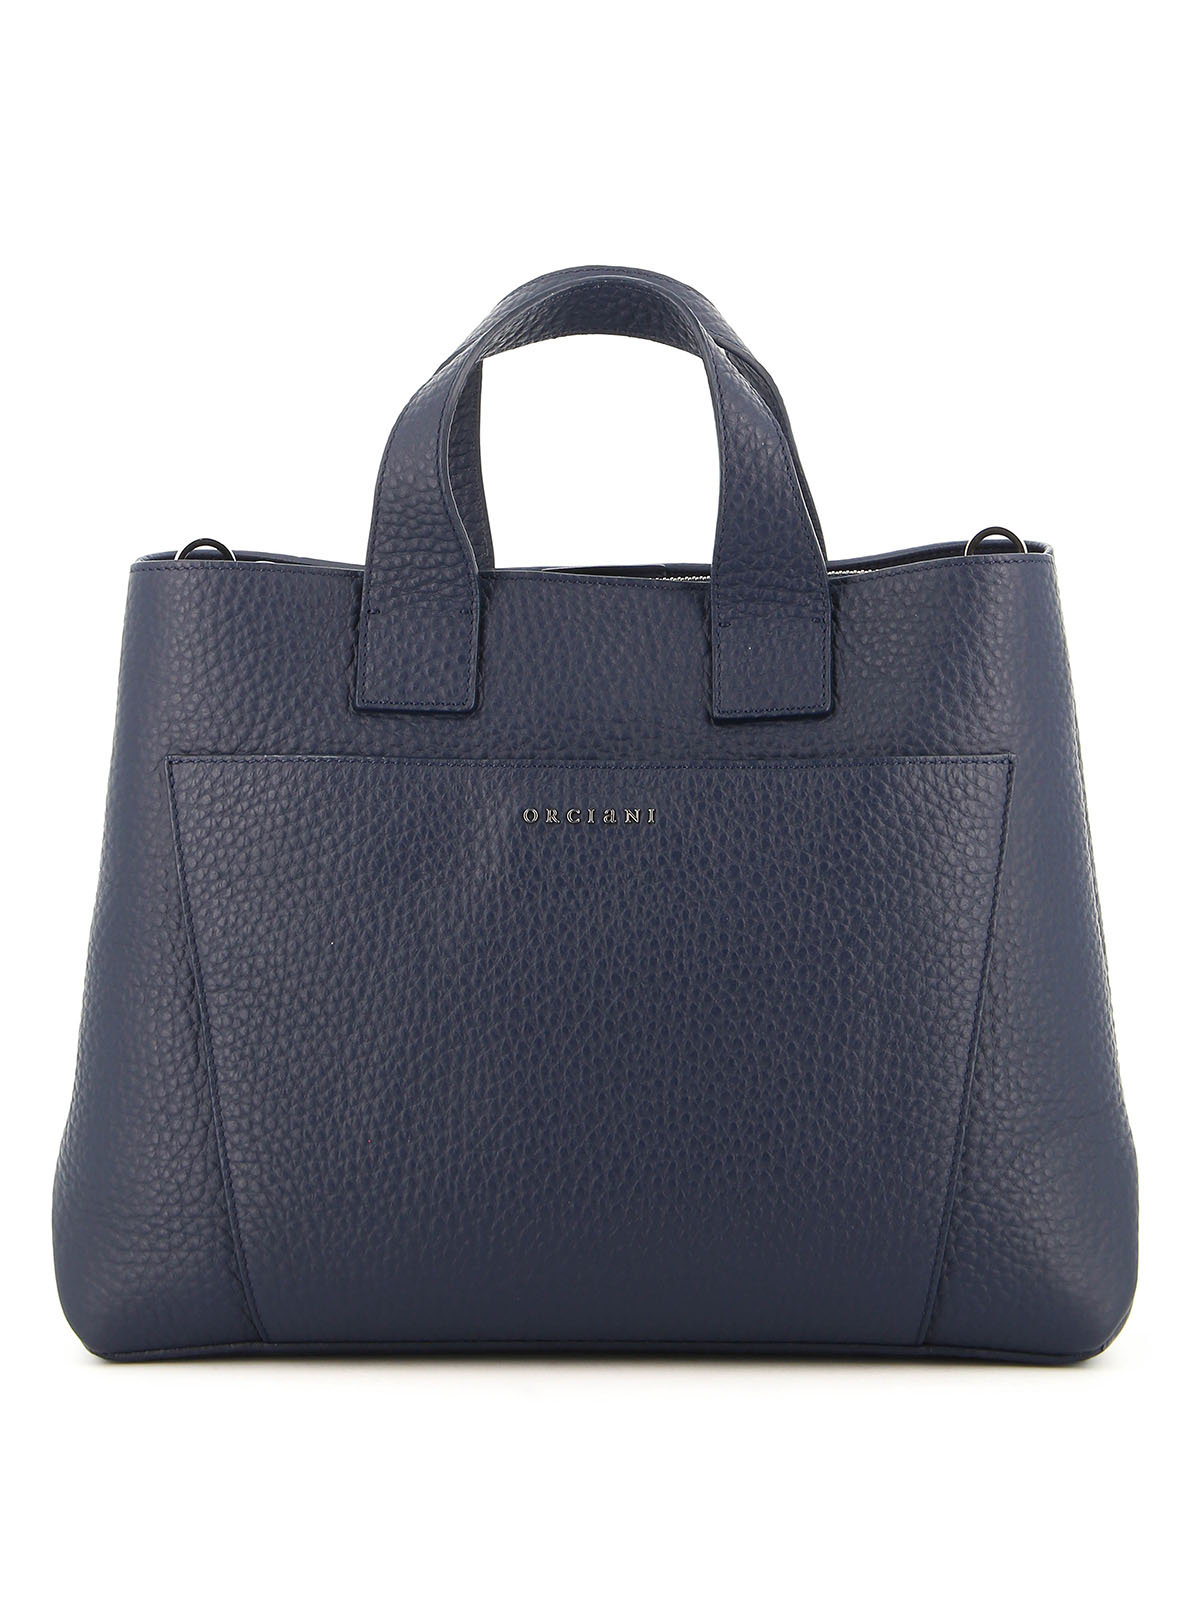 Orciani Leathers NORA SOFT LARGE TOTE BAG